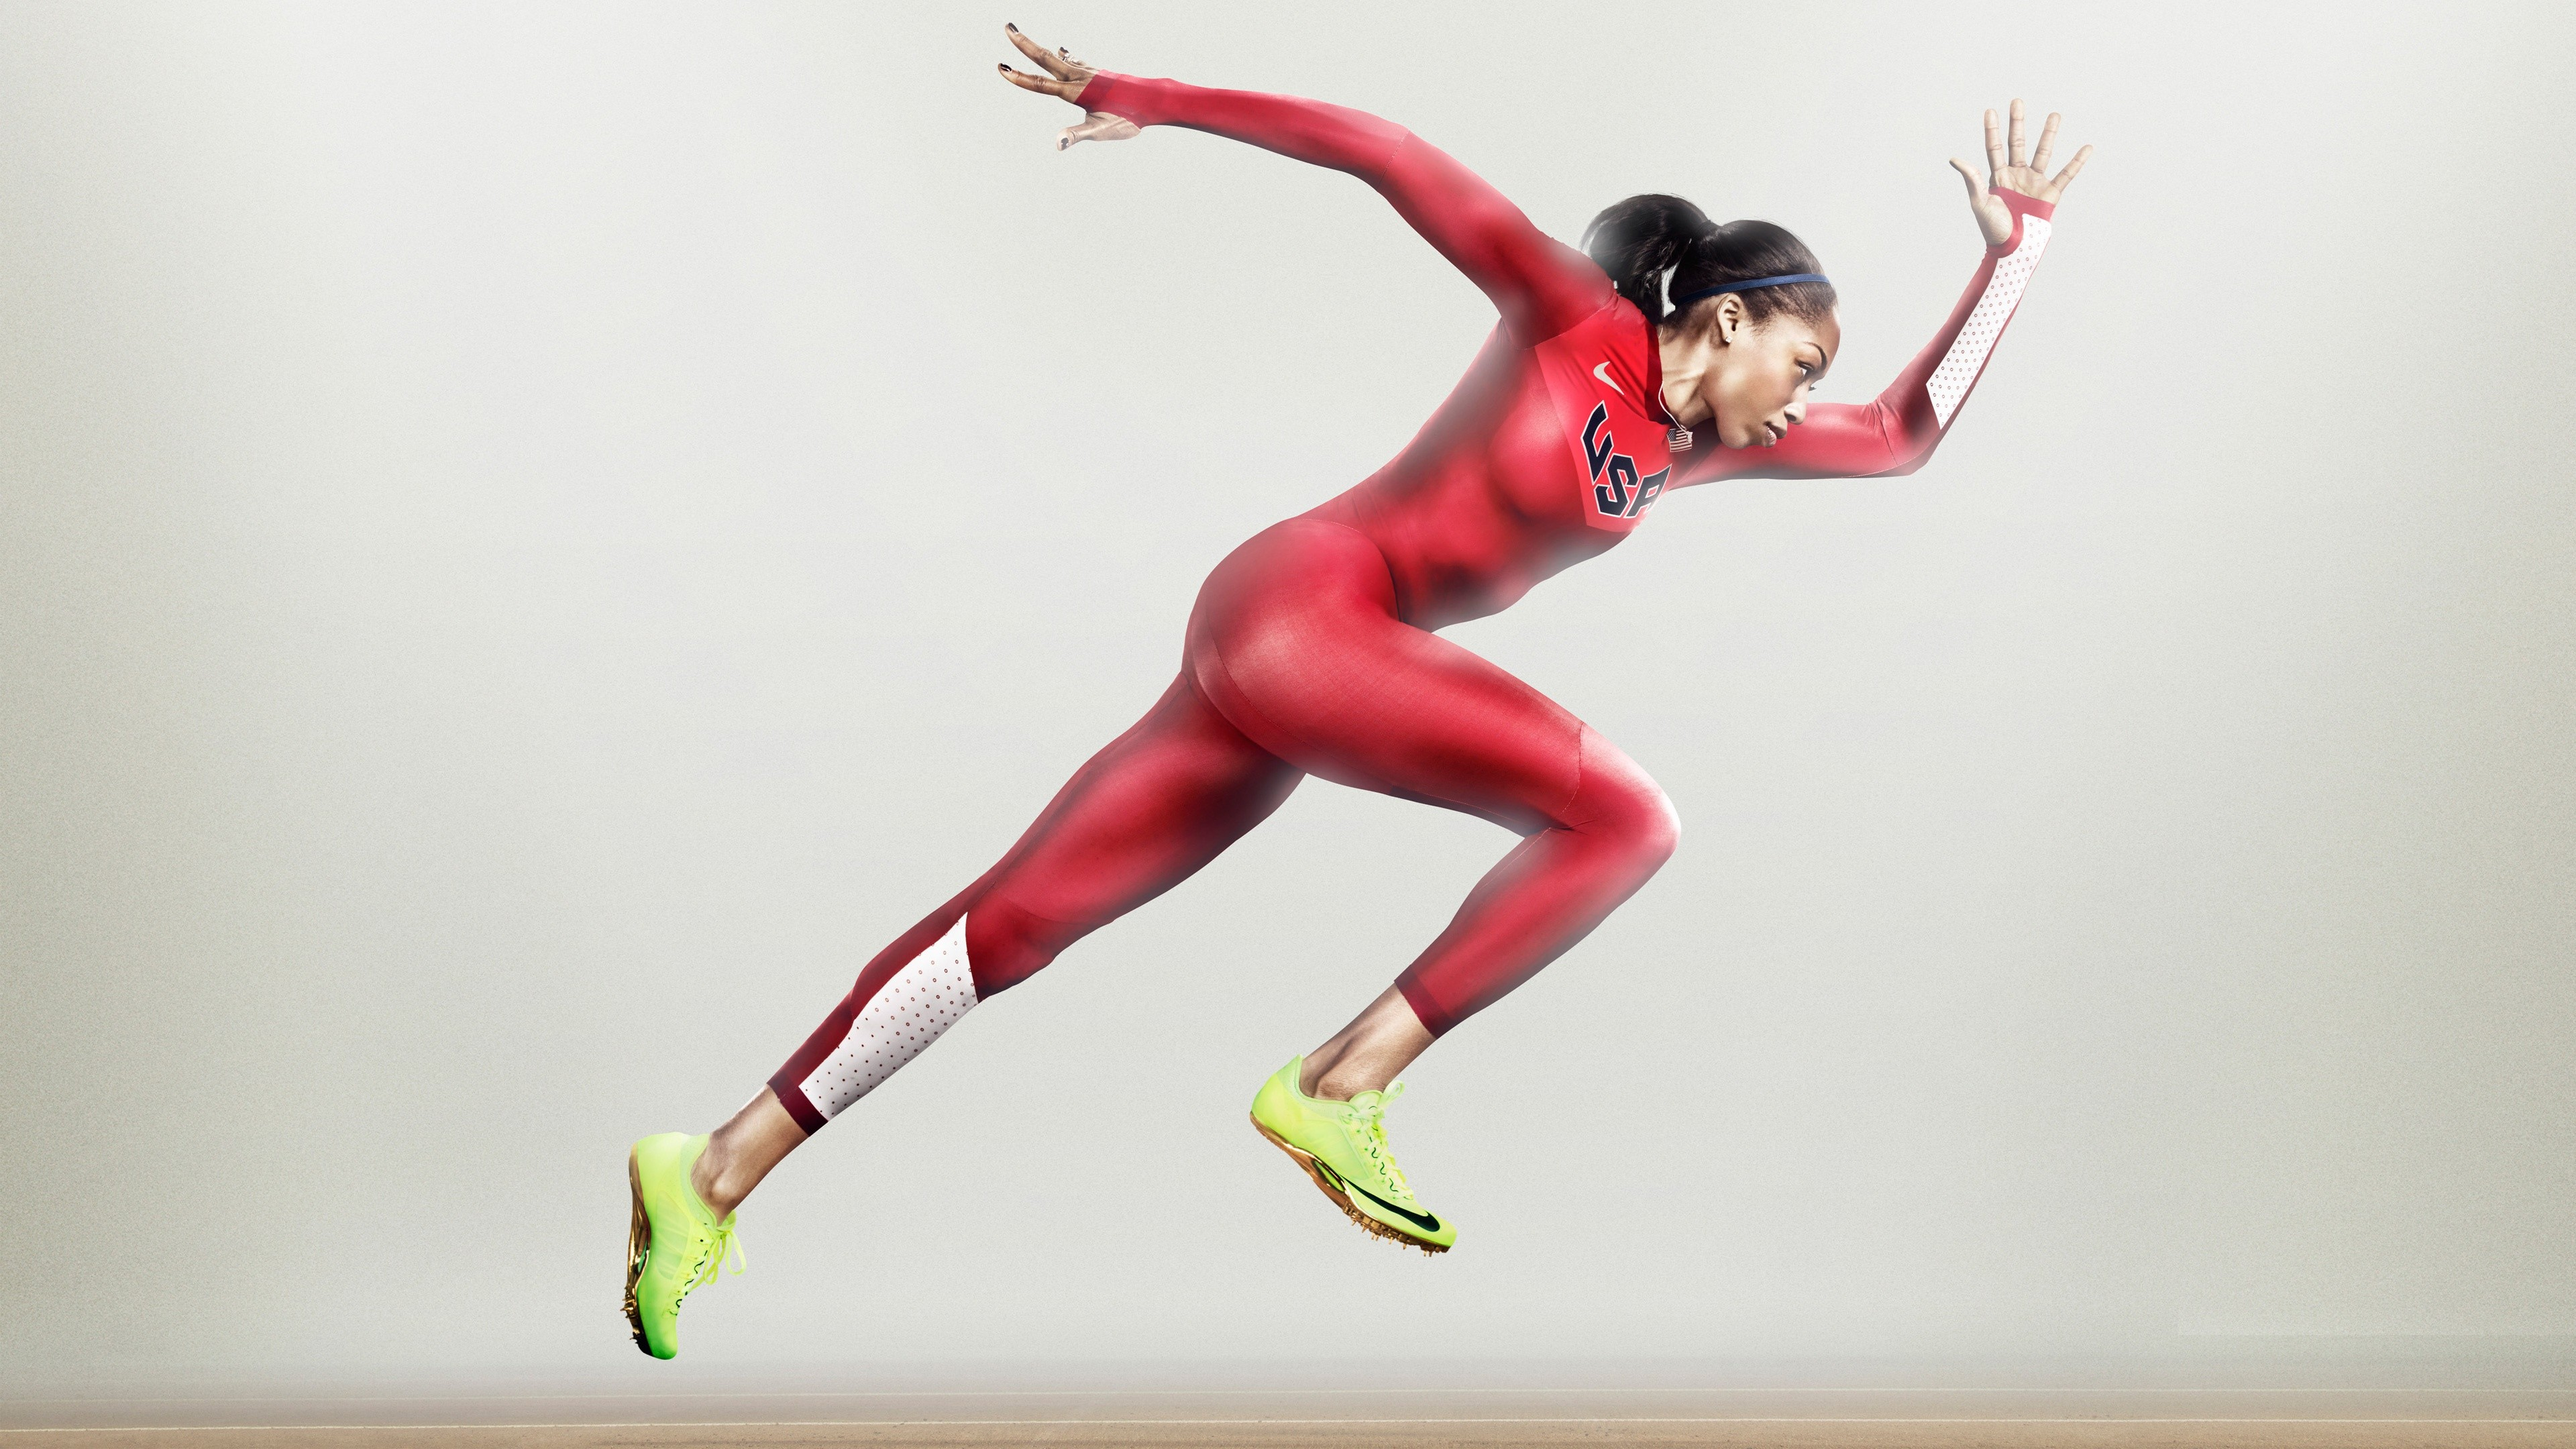 Wallpaper Allyson Felix Nike Running Athlete Women Red